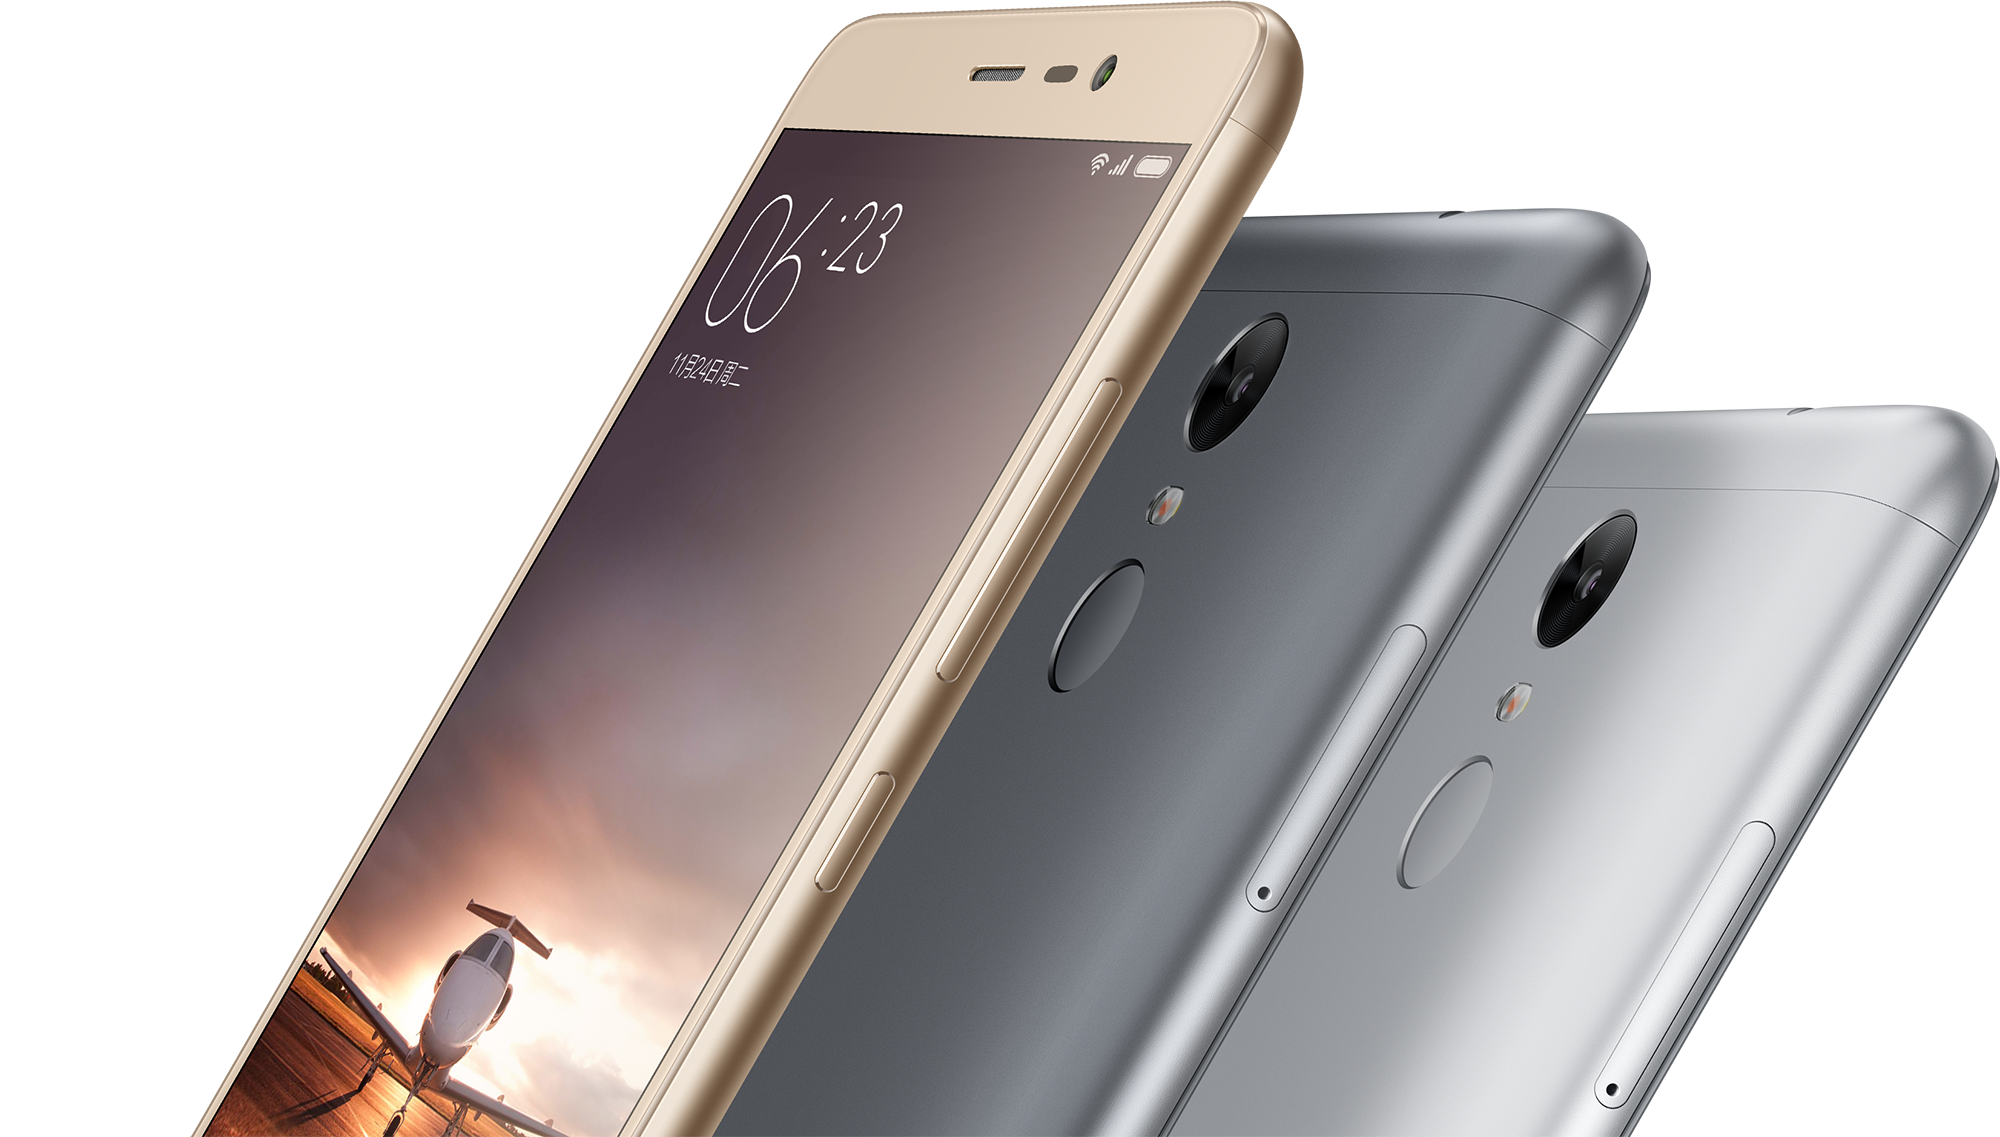 Xiaomi's latest phone is cheap, metal and has a fingerprint sensor